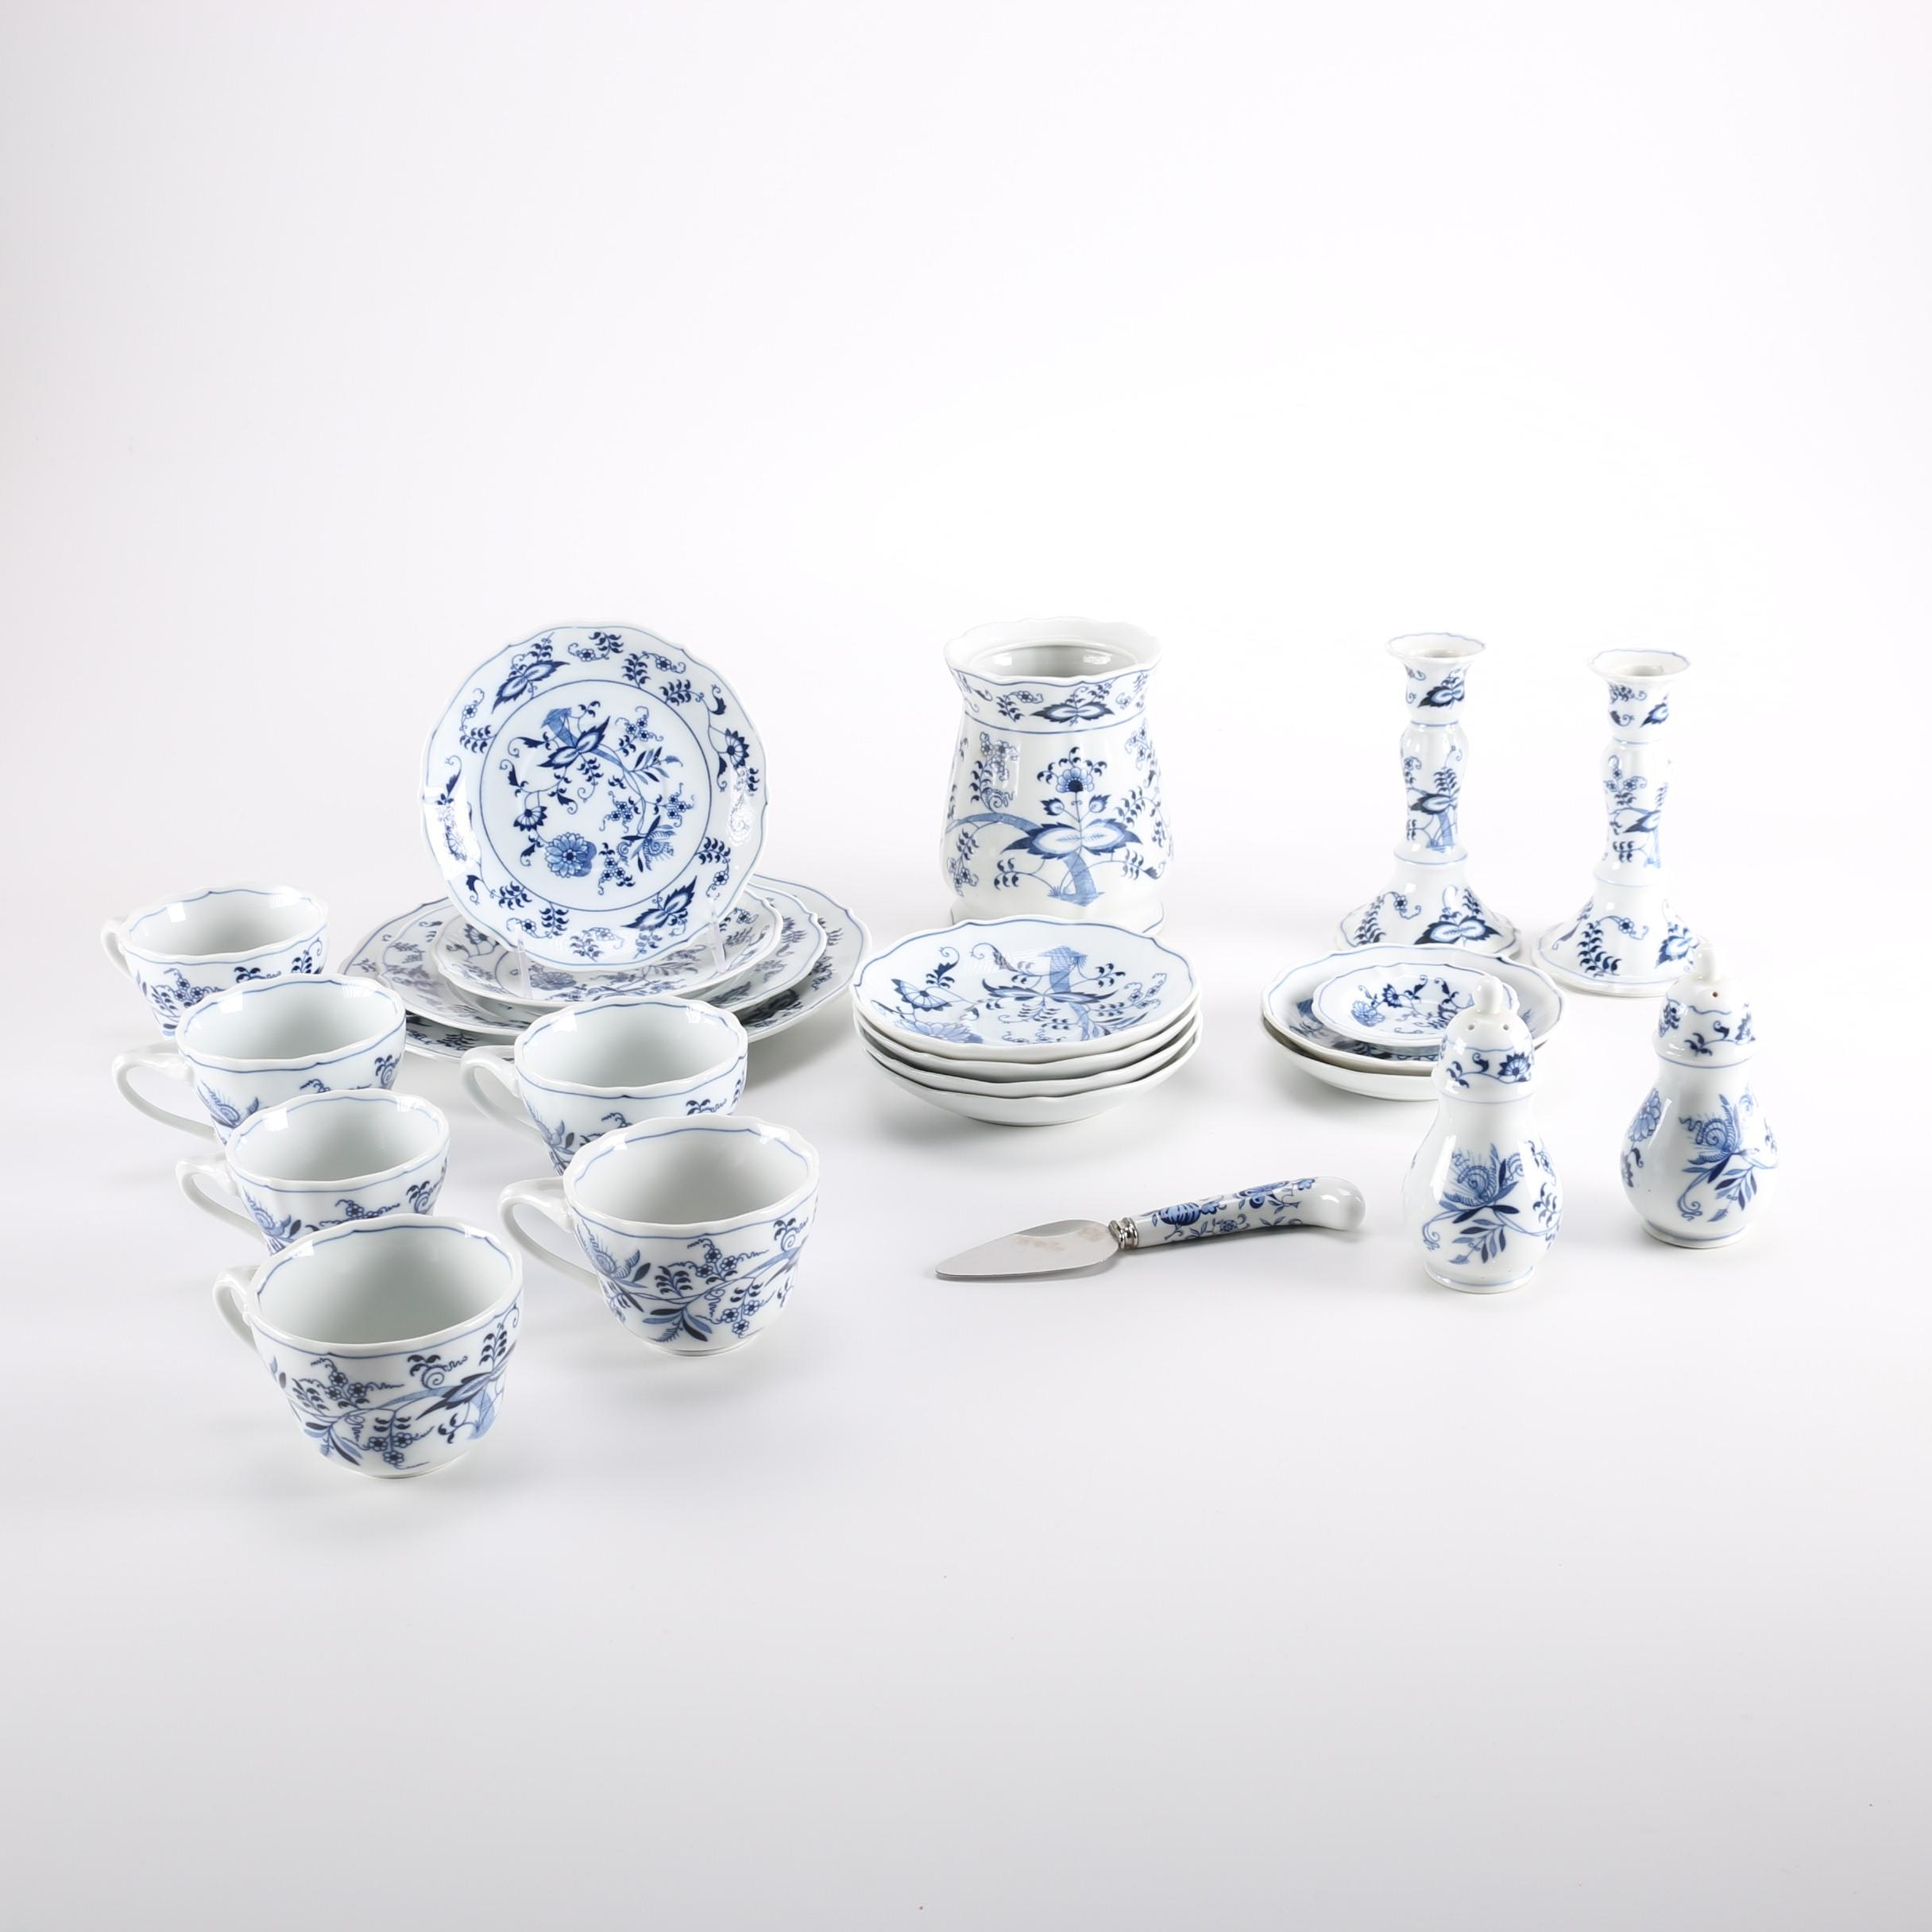 Vintage Set of Blue Danube China